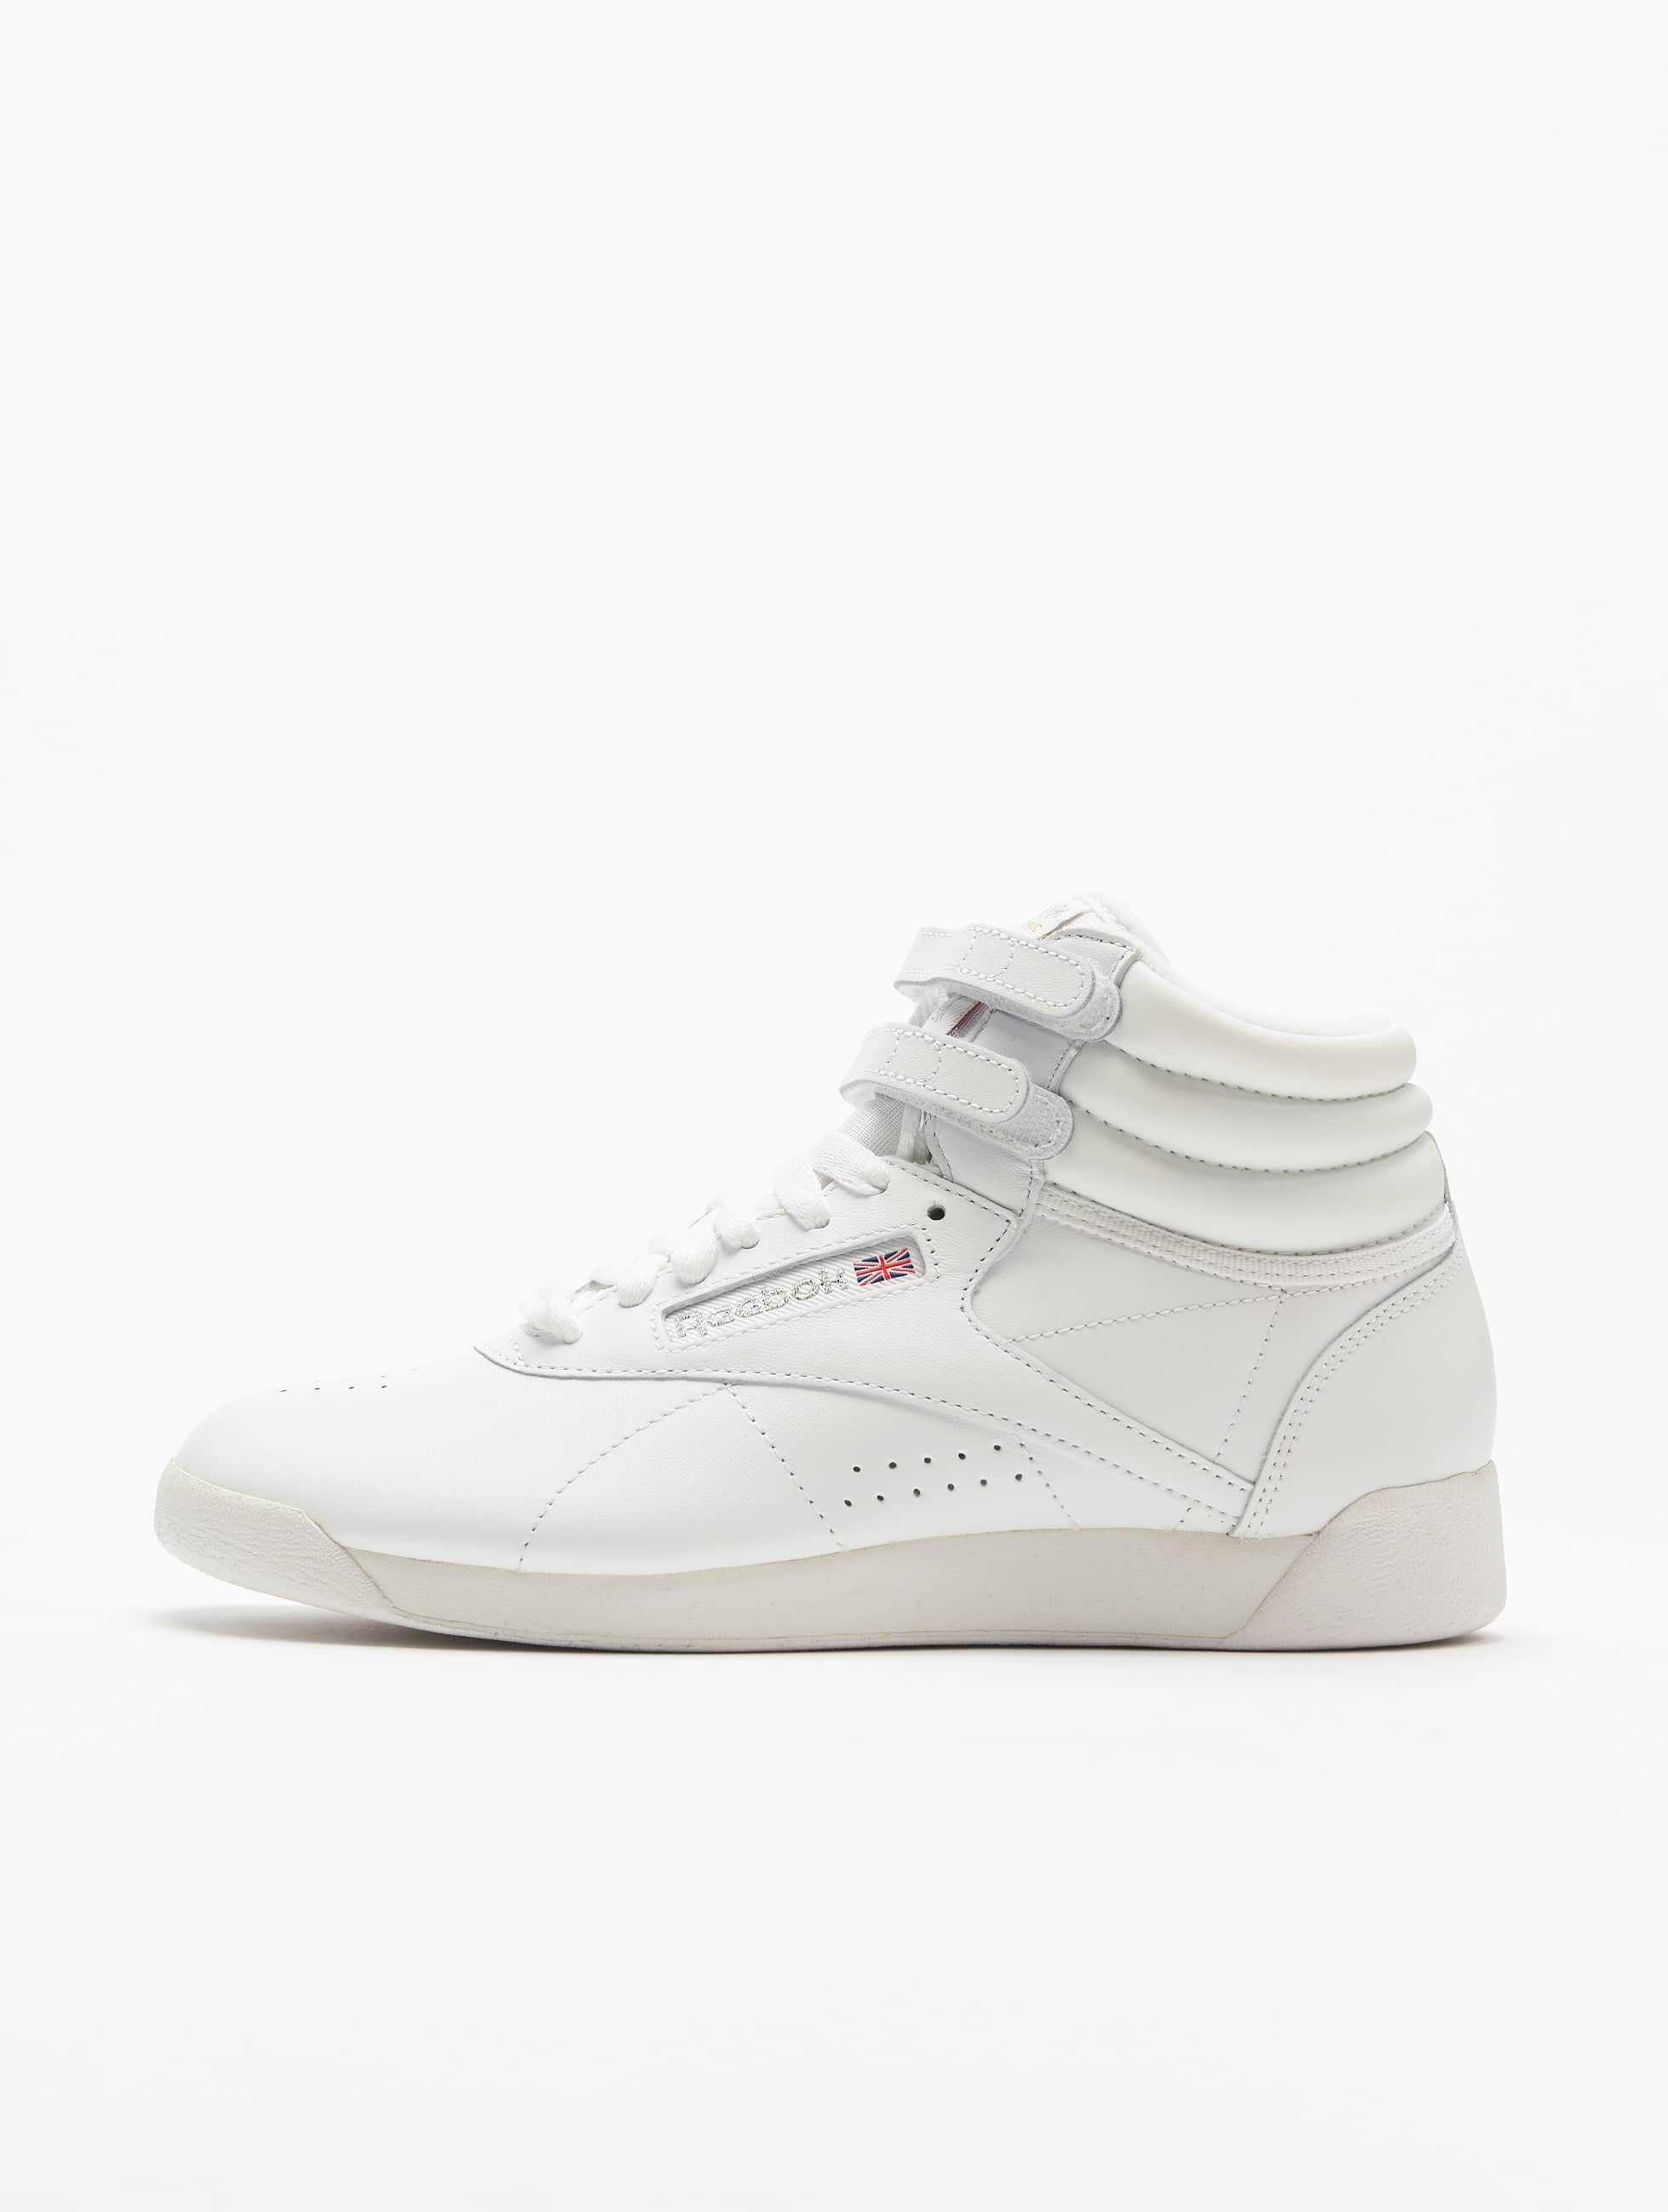 Reebok schoen / sneaker Freestyle Hi Basketball Shoes in wit